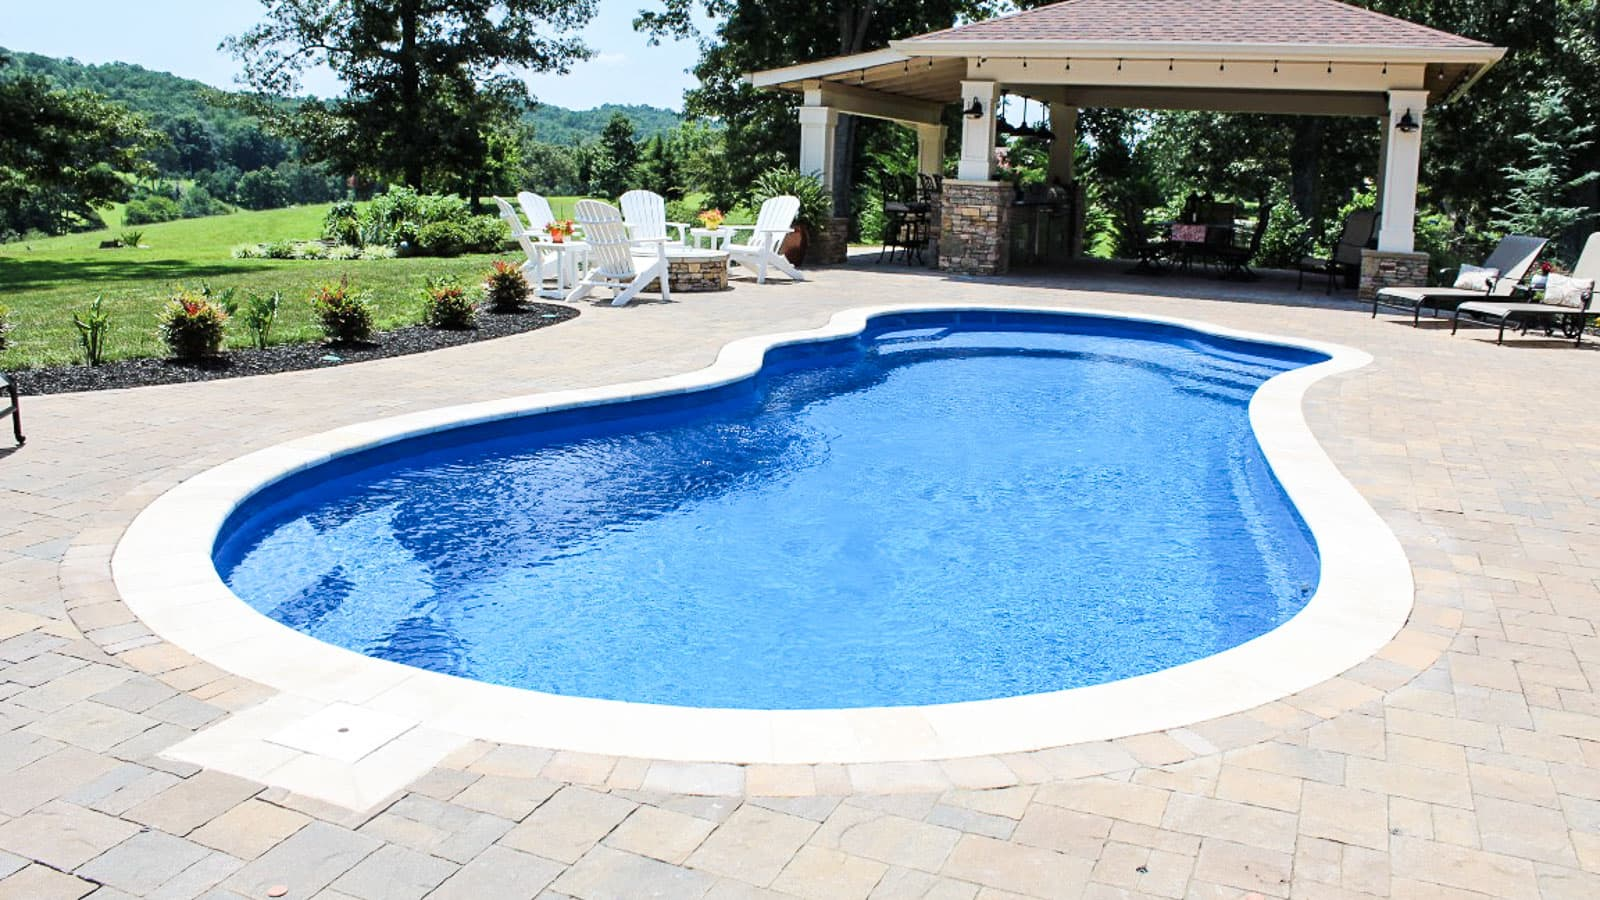 Imagine Pools Fantasy freeform pool model in Ocean Blue color